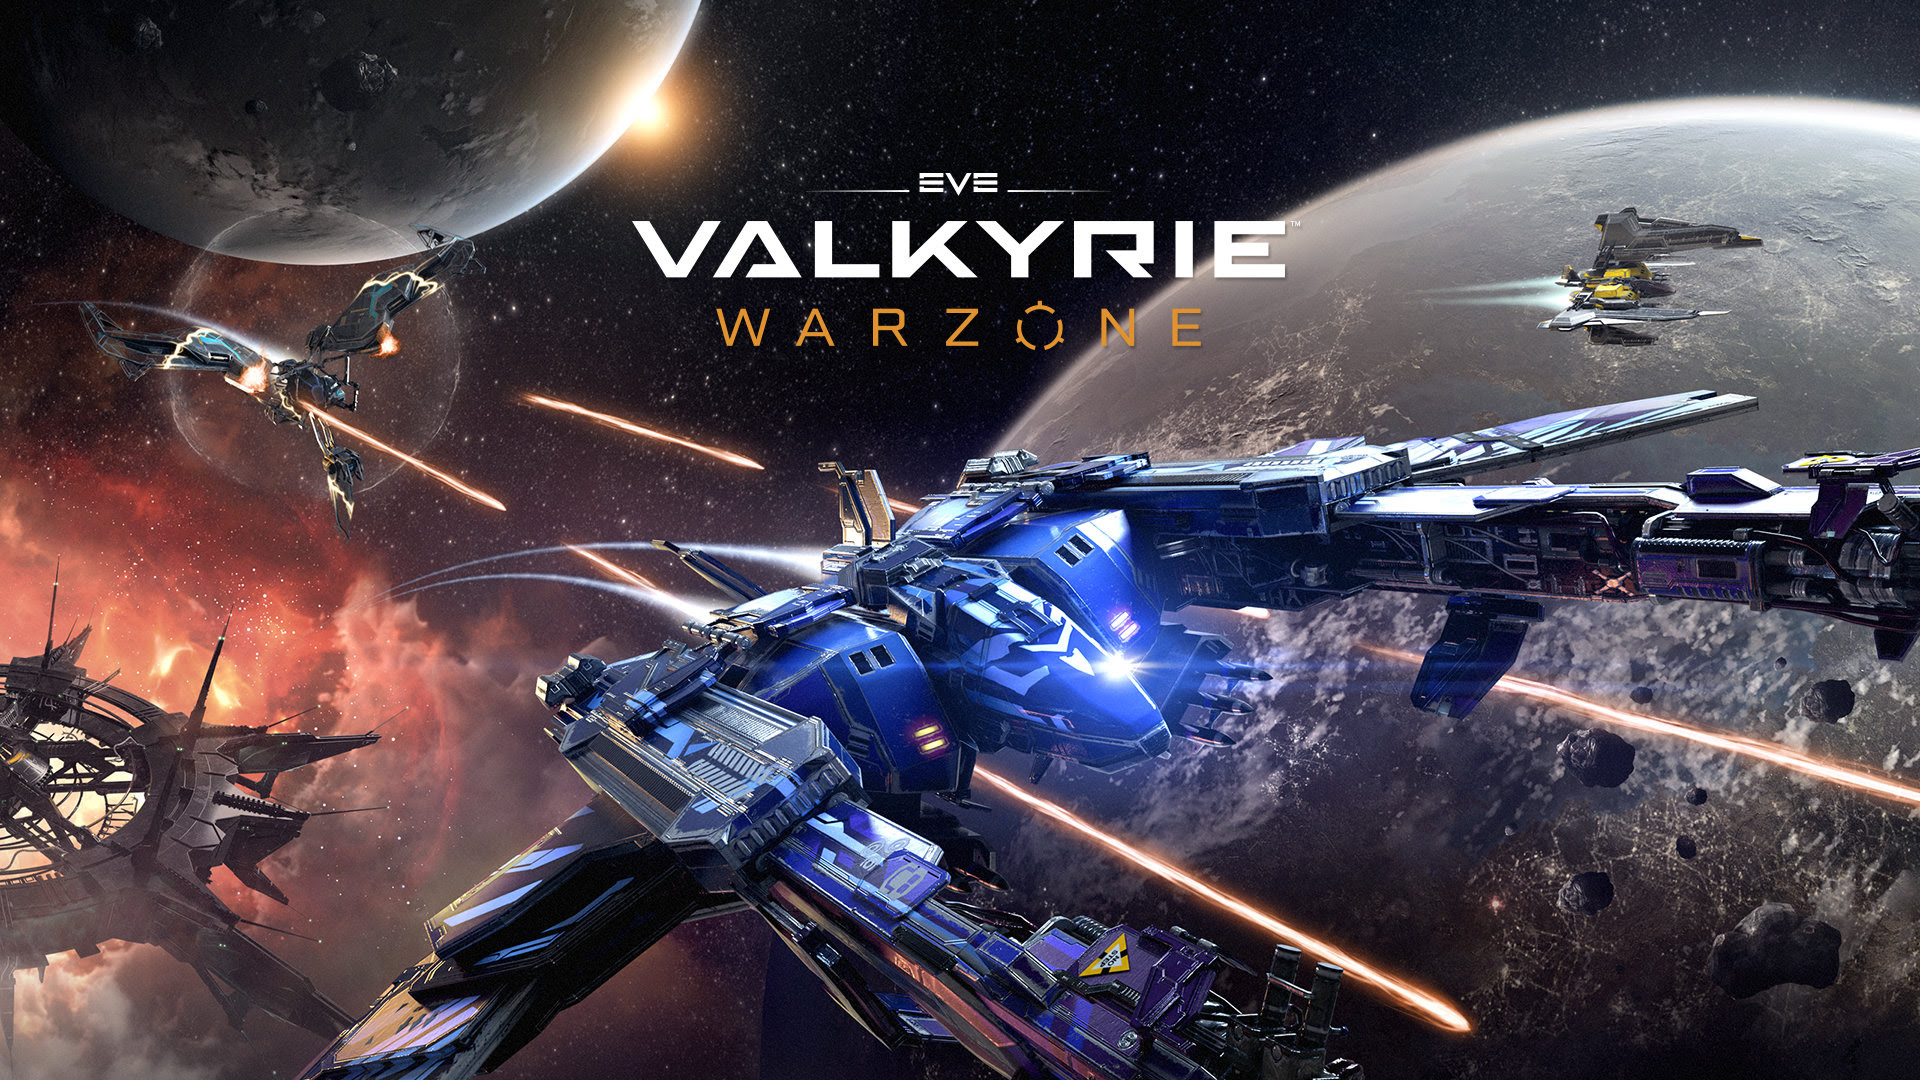 EVE: Valkyrie's Warzone Expansion Arrives on September 26, Removes the PSVR Requirement